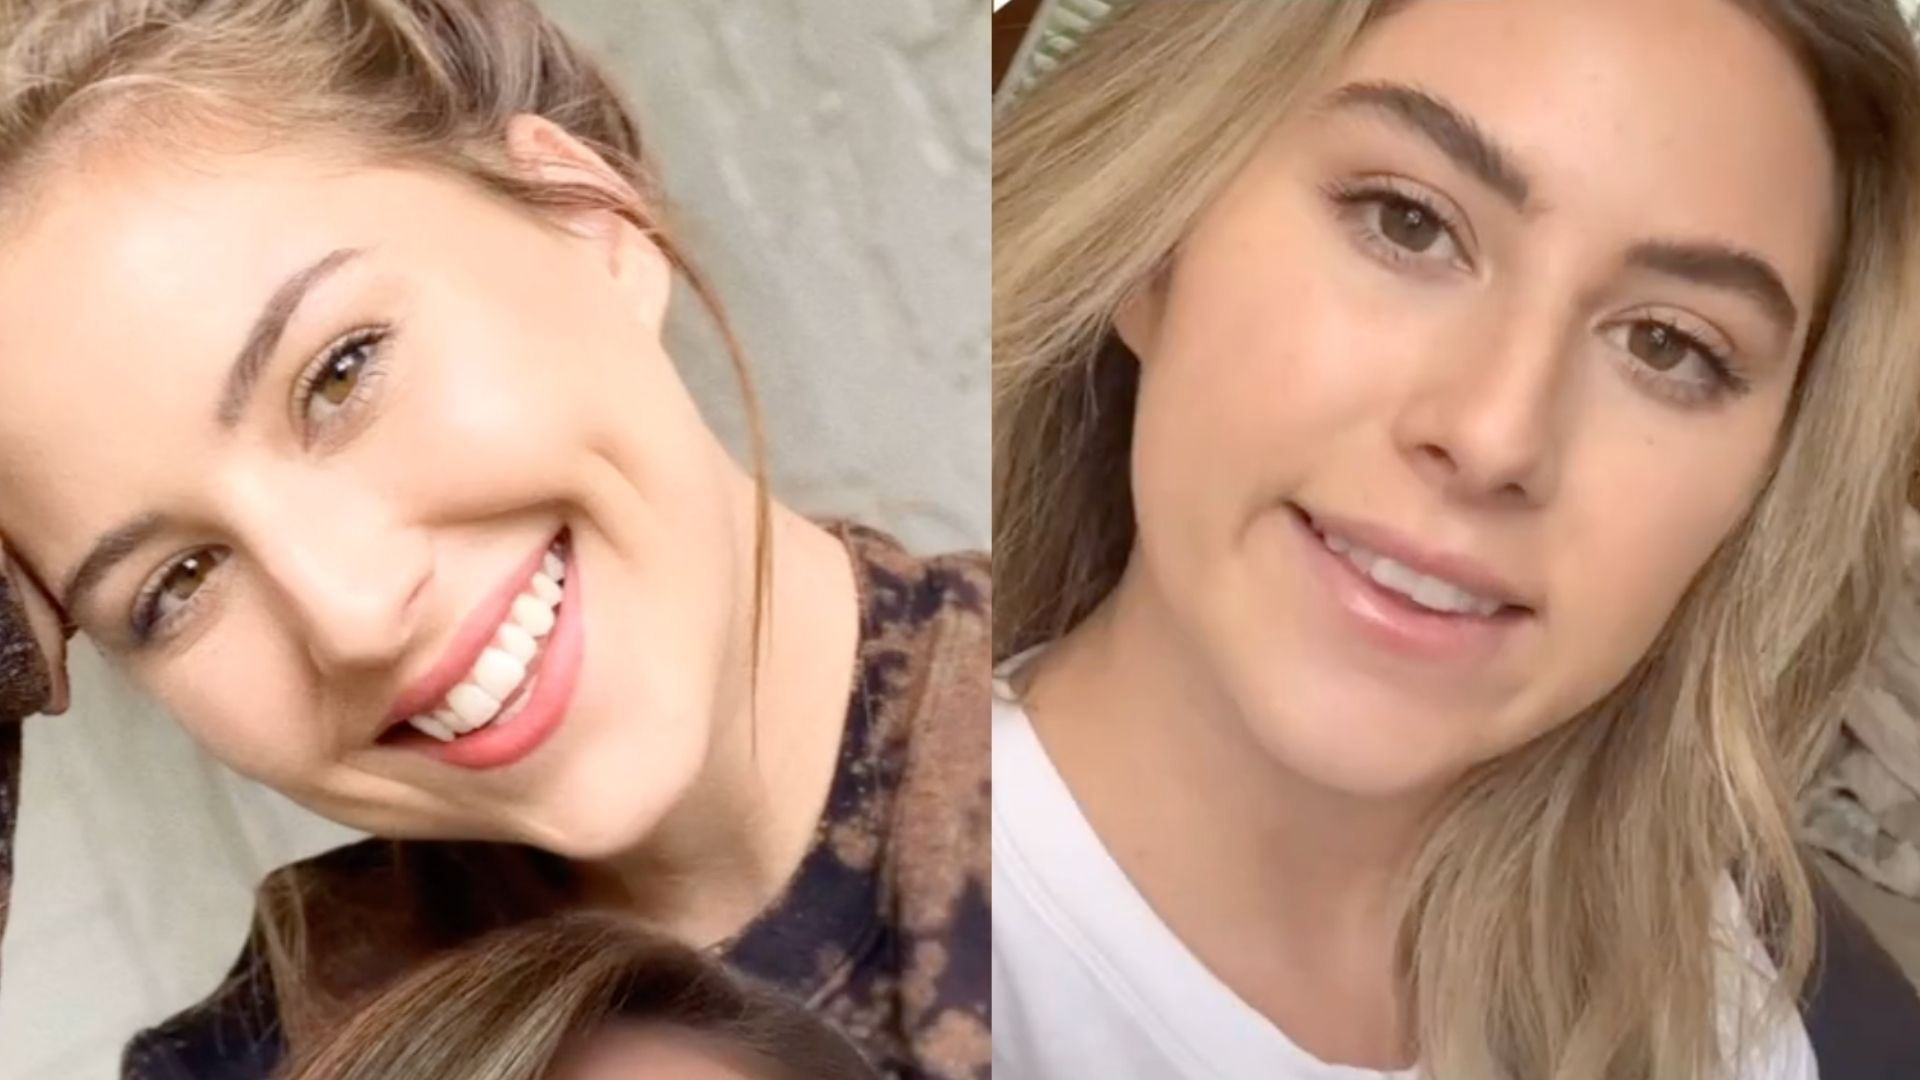 Woman goes viral on TikTok after revealing how a Botox alternative mishap left her with a 'botched' smile - Yahoo Lifestyle